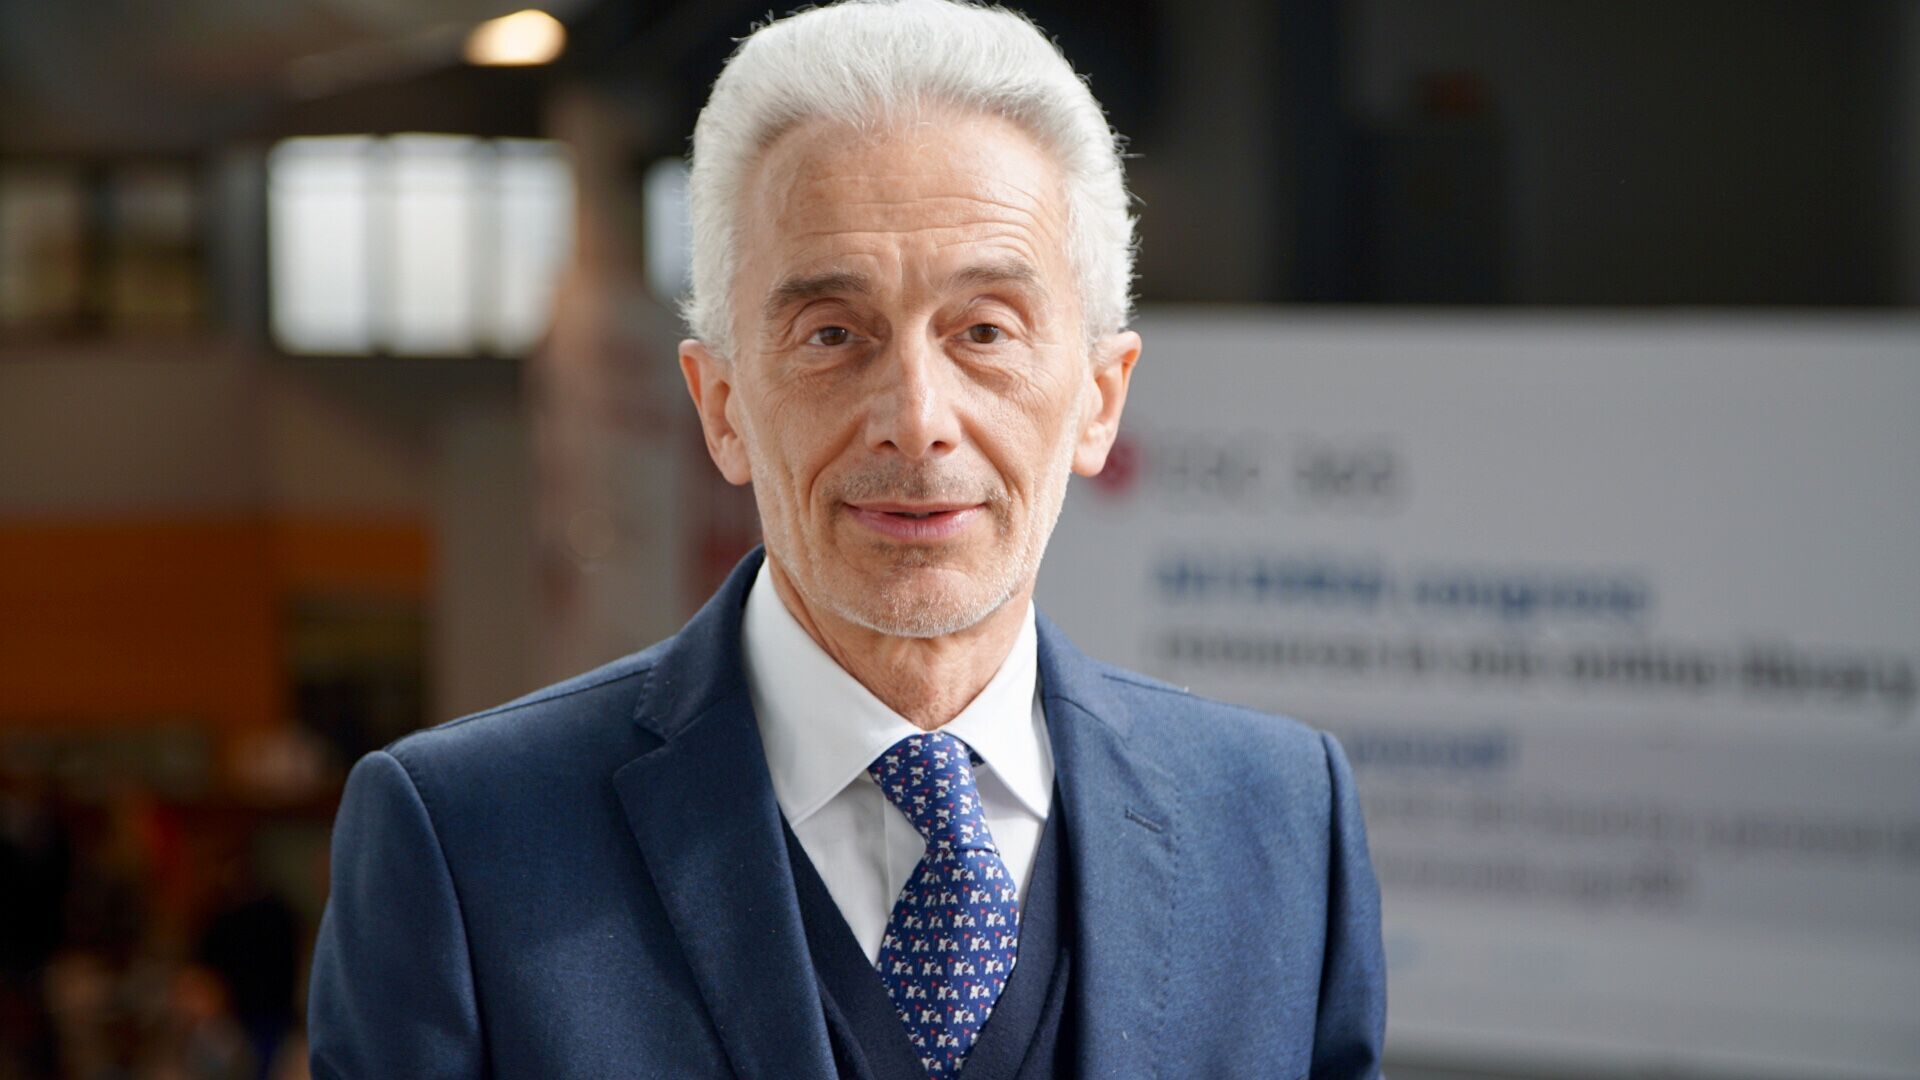 Claudio Tondo, EHRA 2019 – Emerging Balloon Technologies and New Approaches in Atrial Fibrillation